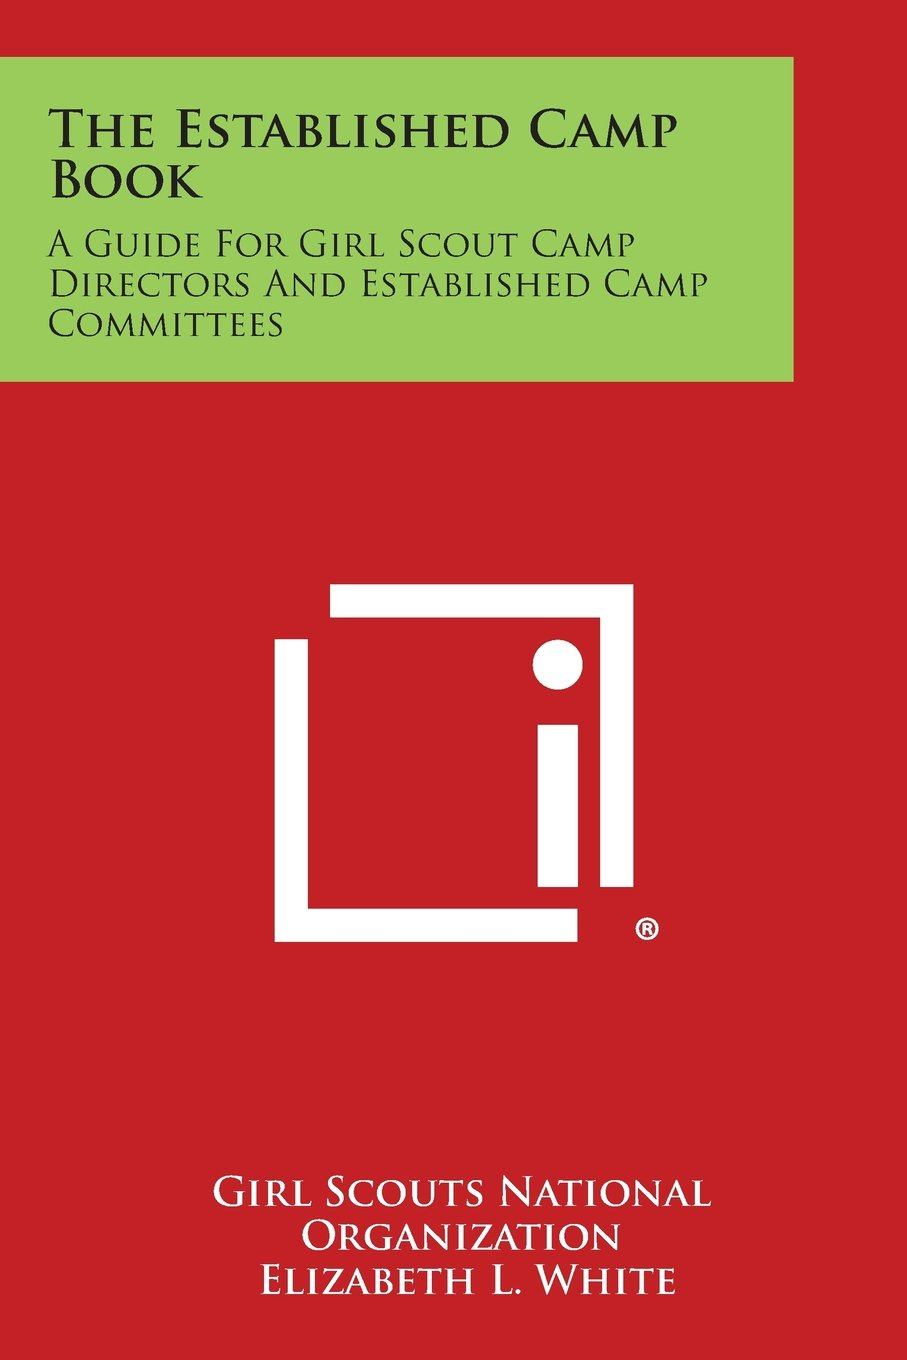 The Established Camp Book: A Guide for Girl Scout Camp Directors and Established Camp Committees pdf